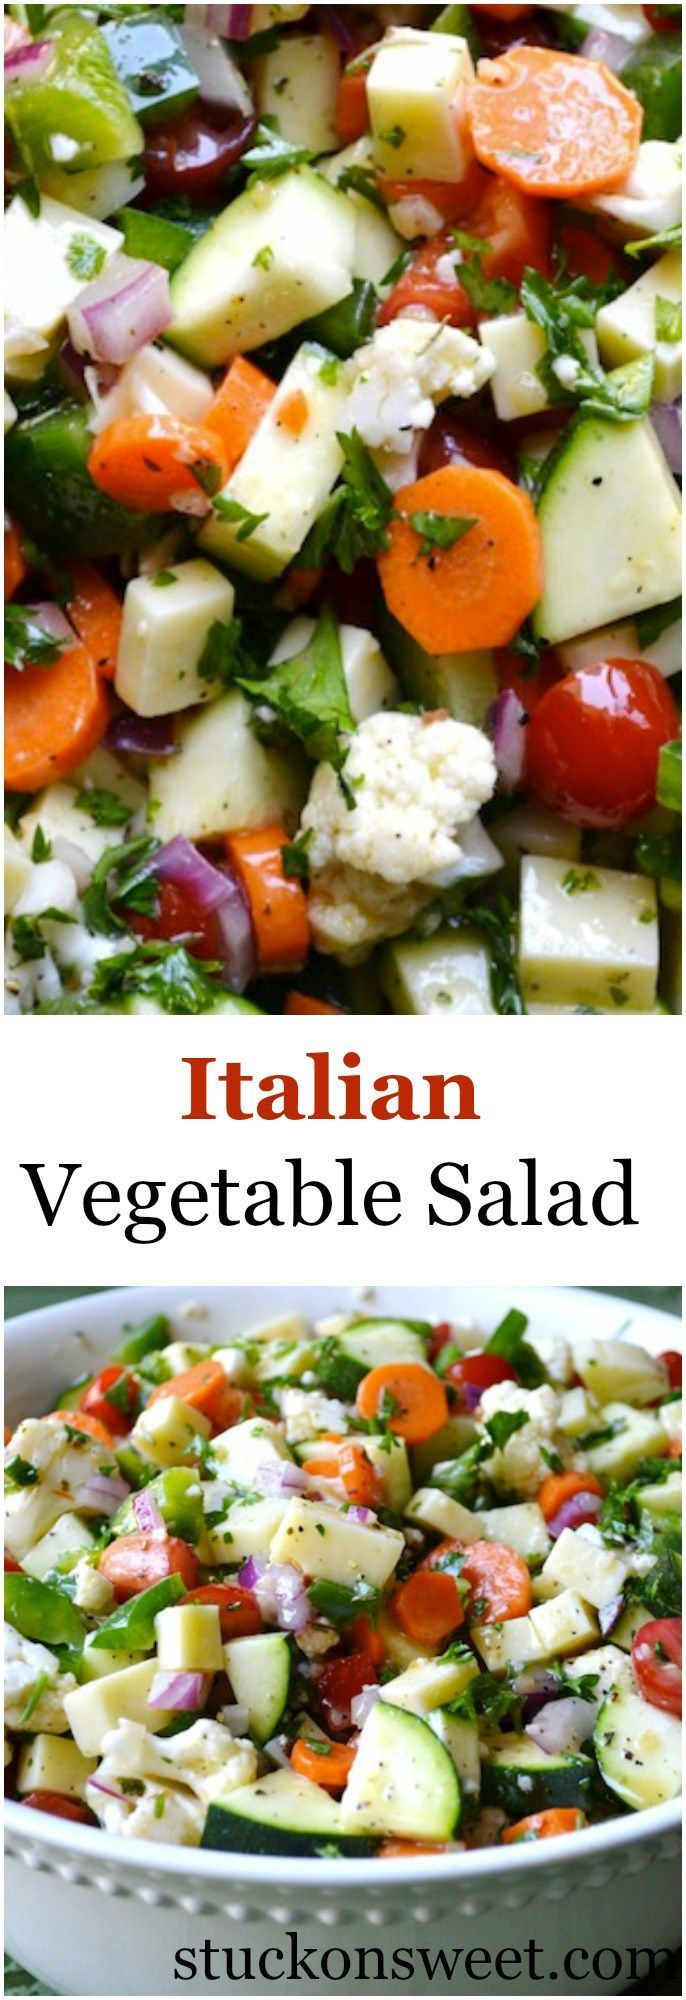 Italian Vegetable Salad | http://stuckonsweet.com